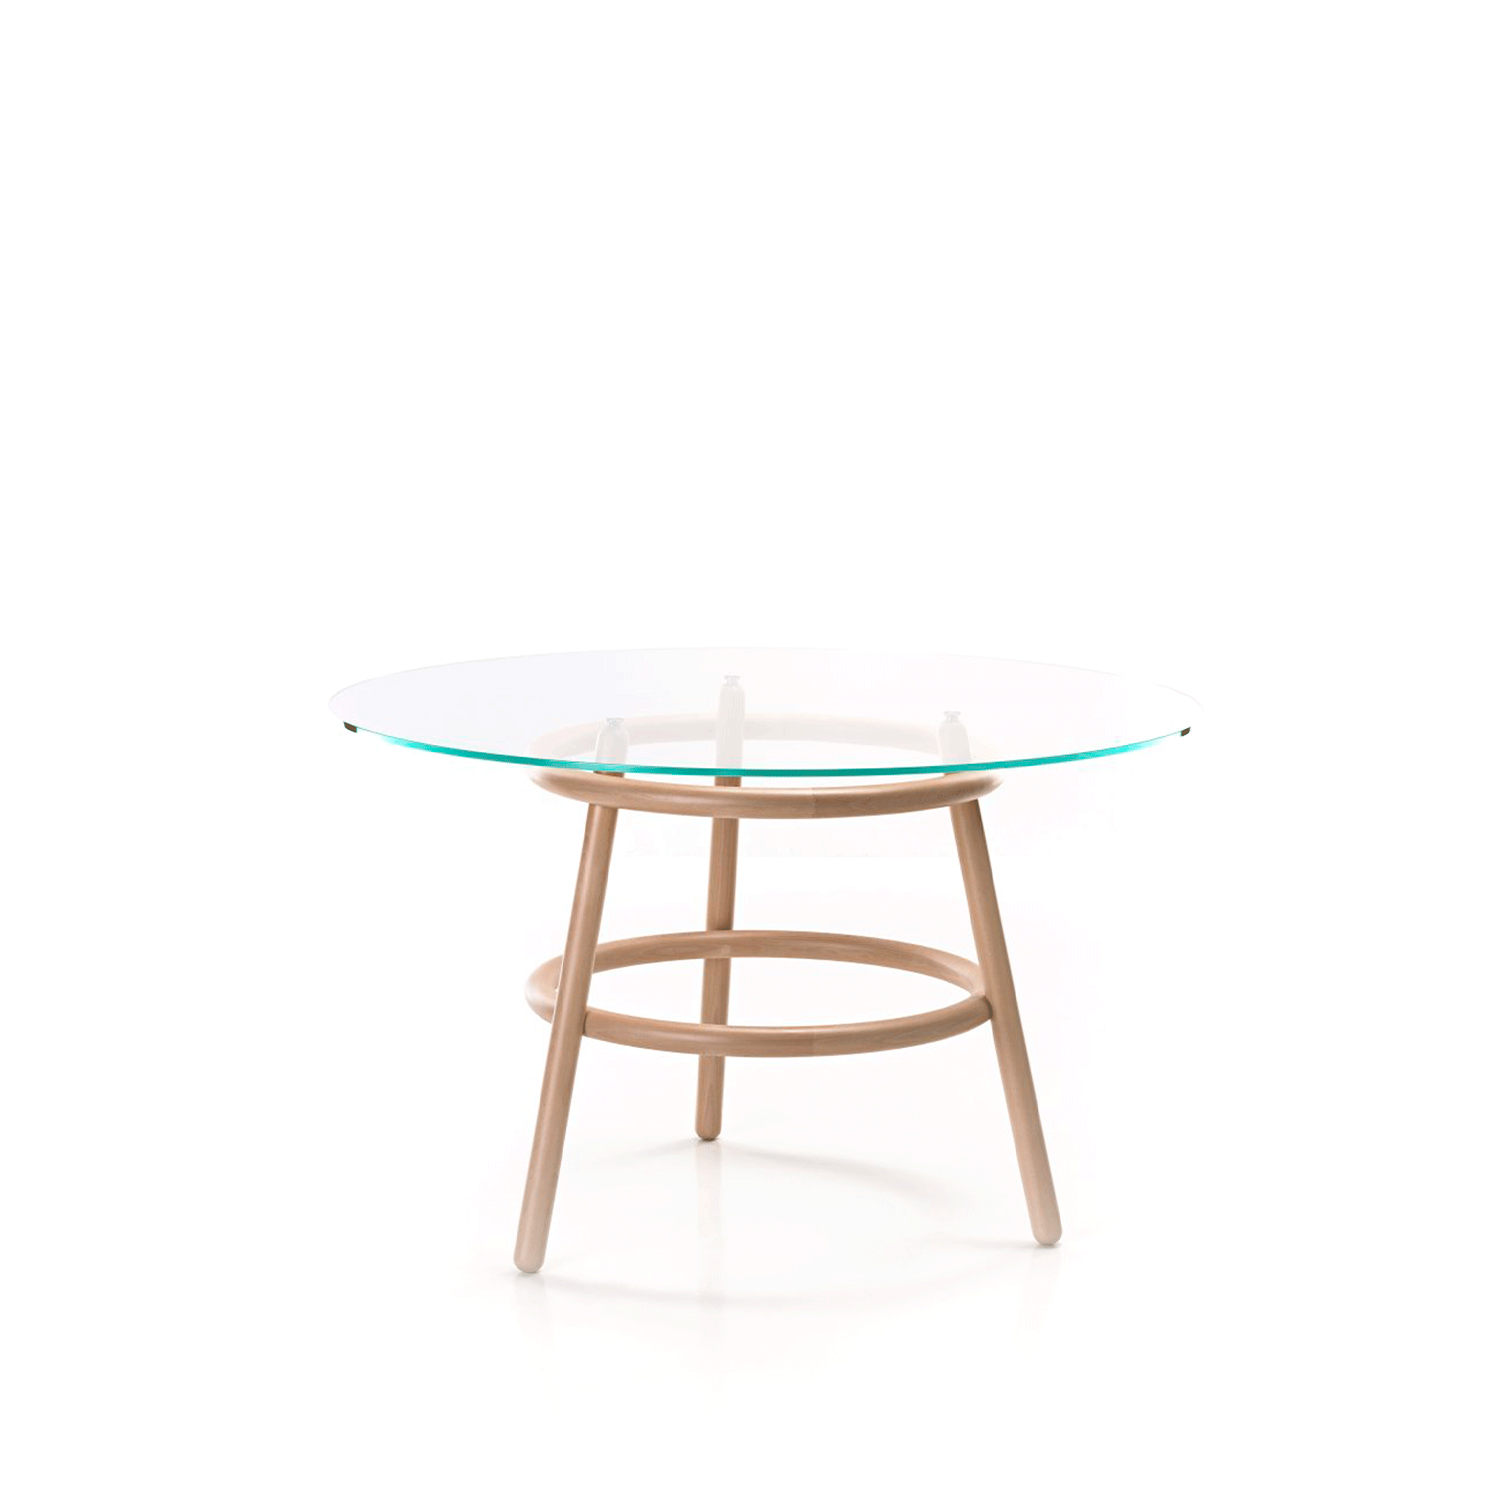 Magistretti 03 02 Table - <p>Magistretti 03 02 is a table designed by the designer Vico Magistretti for Gebrüder Thonet Vienna. It has a support structure in solid beech with round section elements. The base is made up of three legs intersected by two hoops of the same diameter. The round, flush top is in a tempered polished glass.</p>  | Matter of Stuff